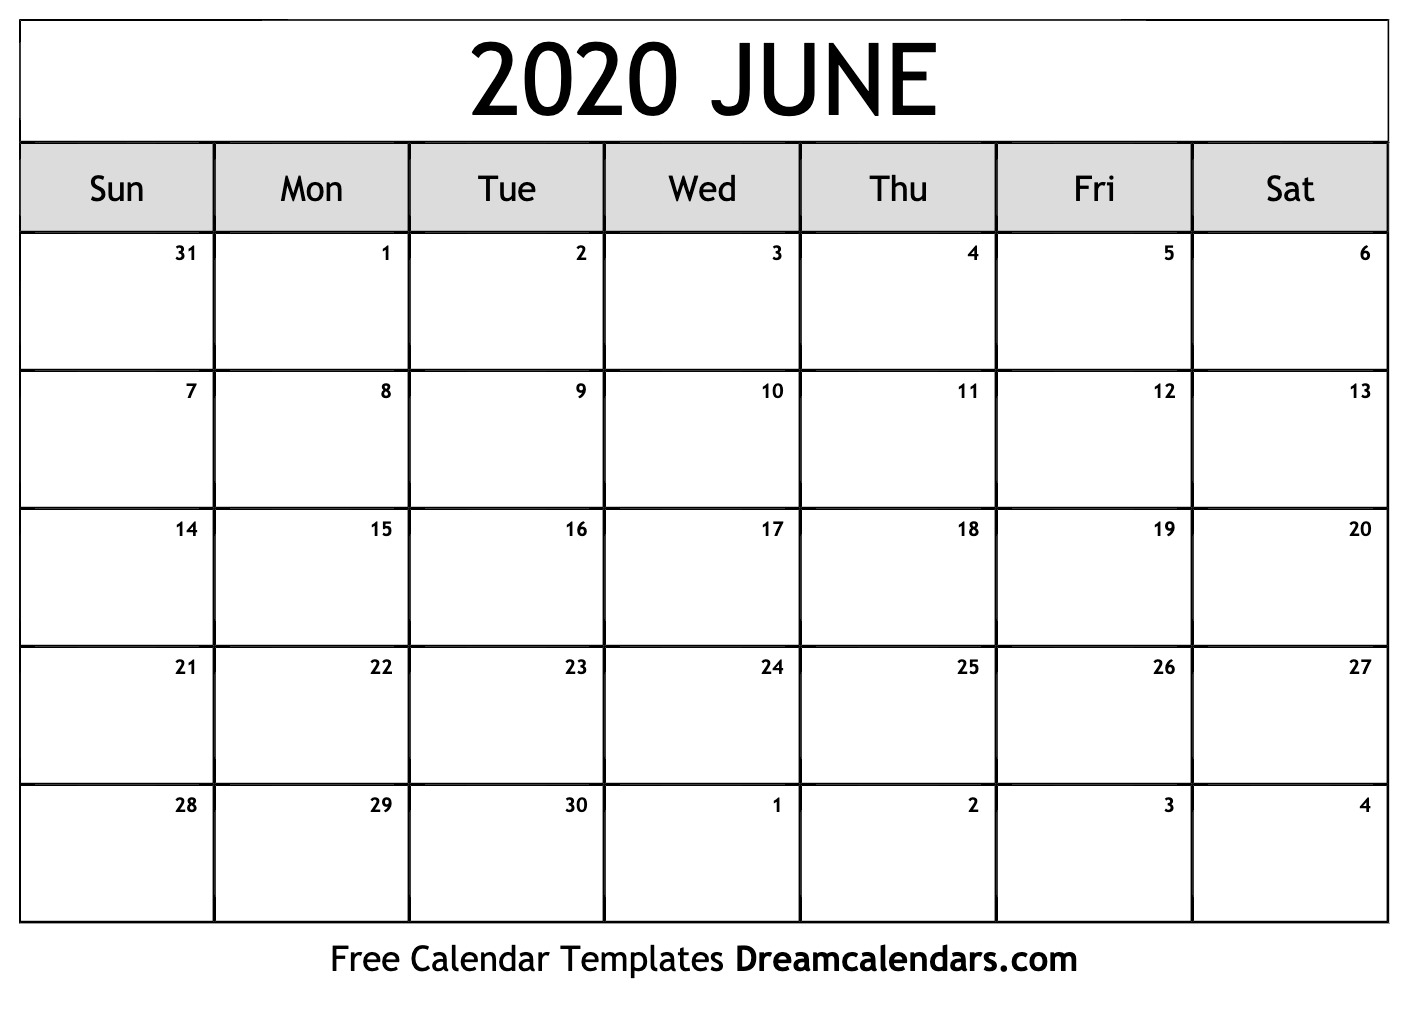 Printable June 2020 Calendar intended for Special Days In June 2020